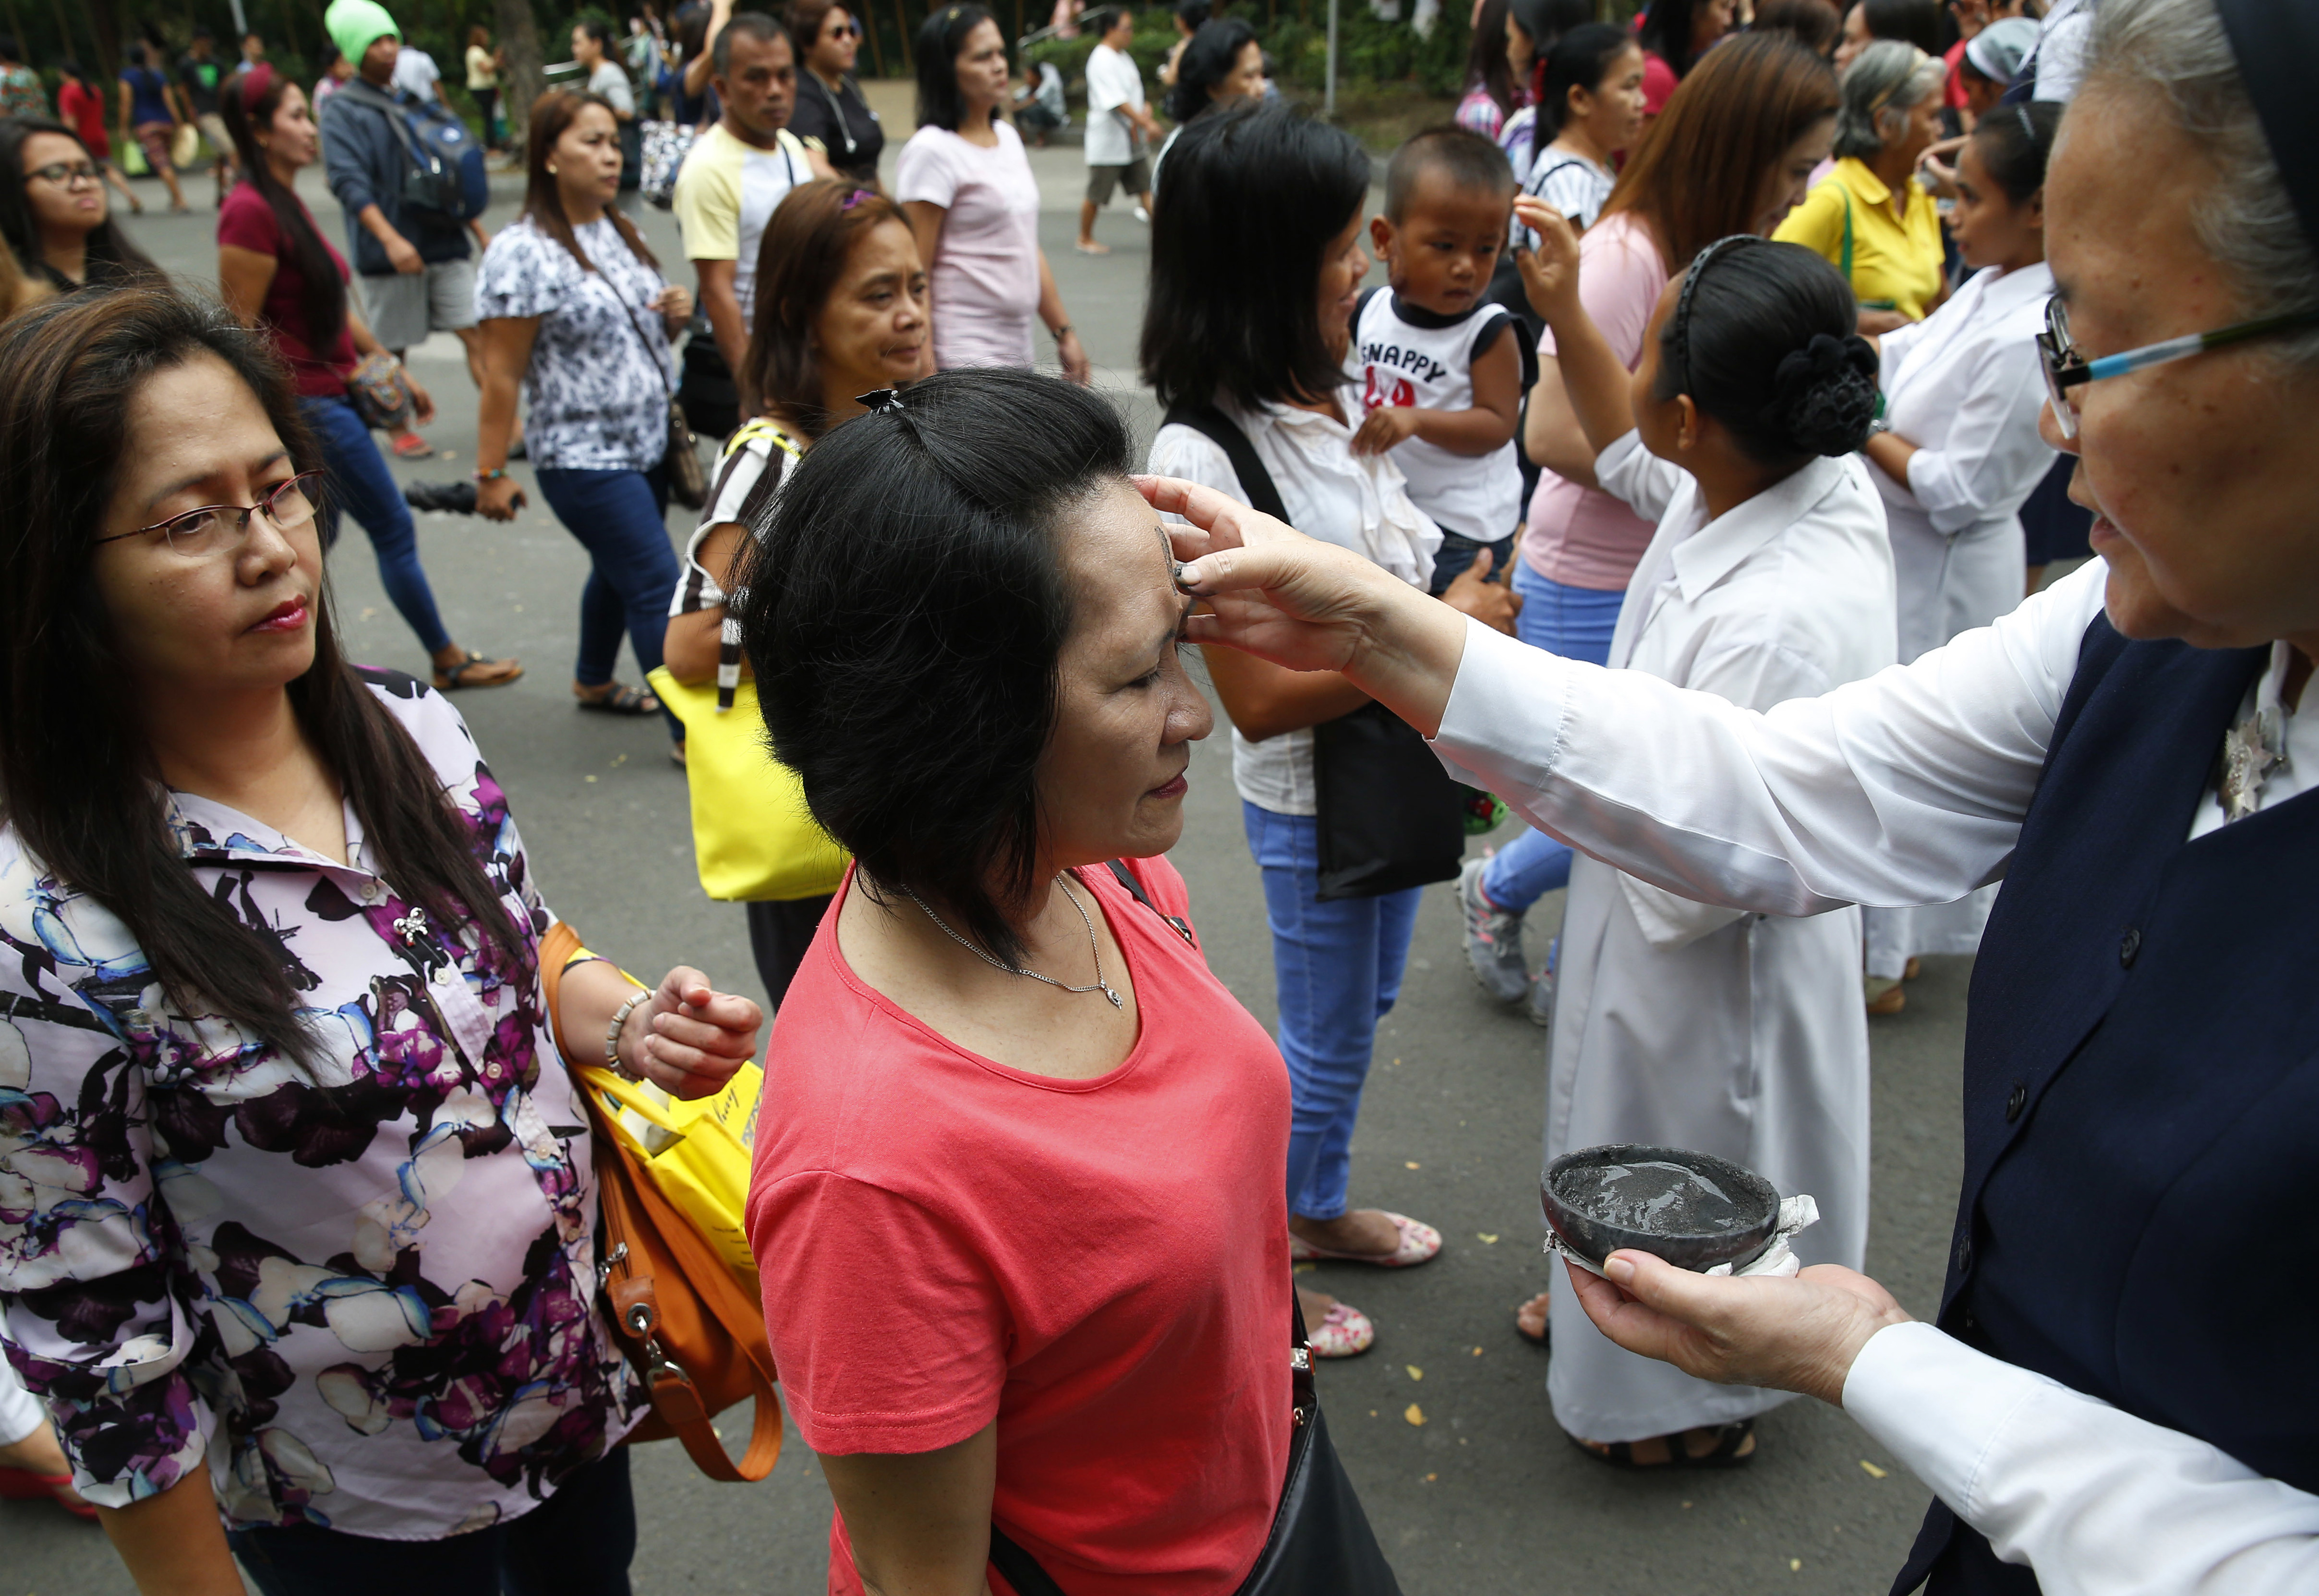 Roman Catholic devotees have their foreheads rubbed with ash in observance of Ash Wednesday which ushers the season of Lent and also coincides with Valentine's Day celebration Wednesday, Feb. 14, 2018, in Paranaque southeast of Manila, Philippines. Ash Wednesday is observed all over the world by Roman Catholics to remind mankind that God created humans from dust. (AP Photo/Bullit Marquez)